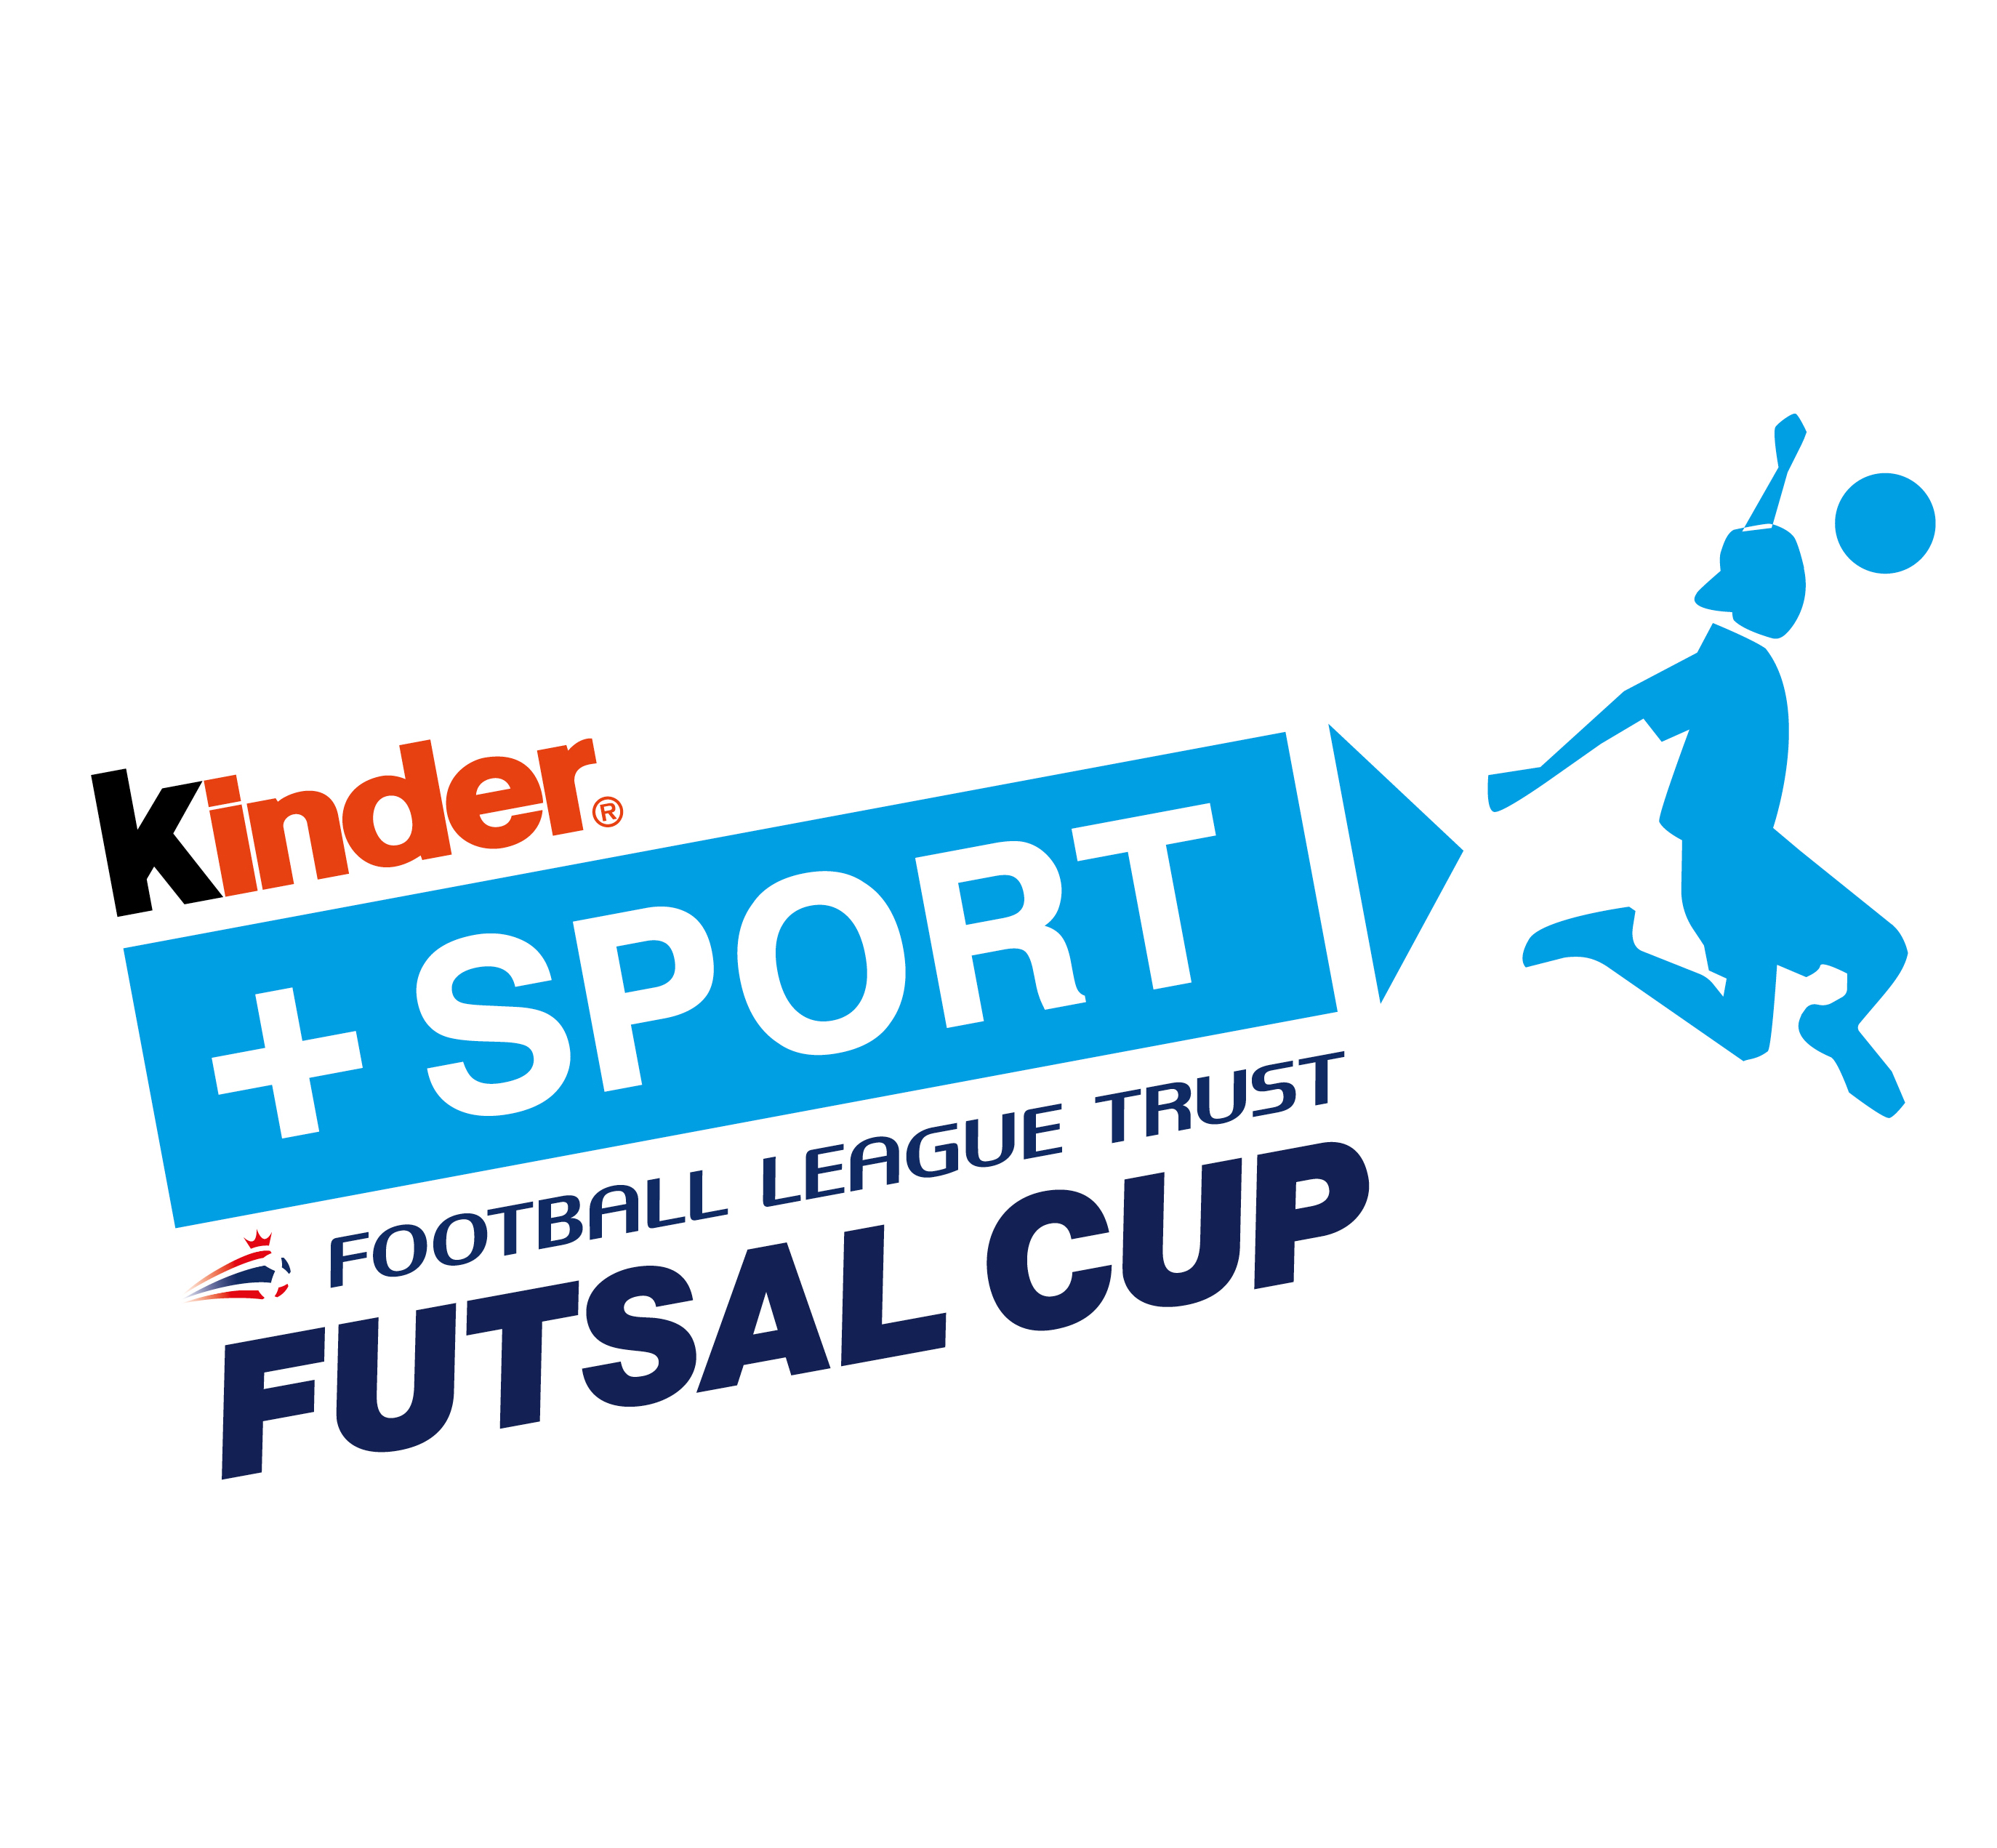 b8fef55023 Kinder+ Sport FLT Futsal Cup Preview - Grimsby Town Sports ...